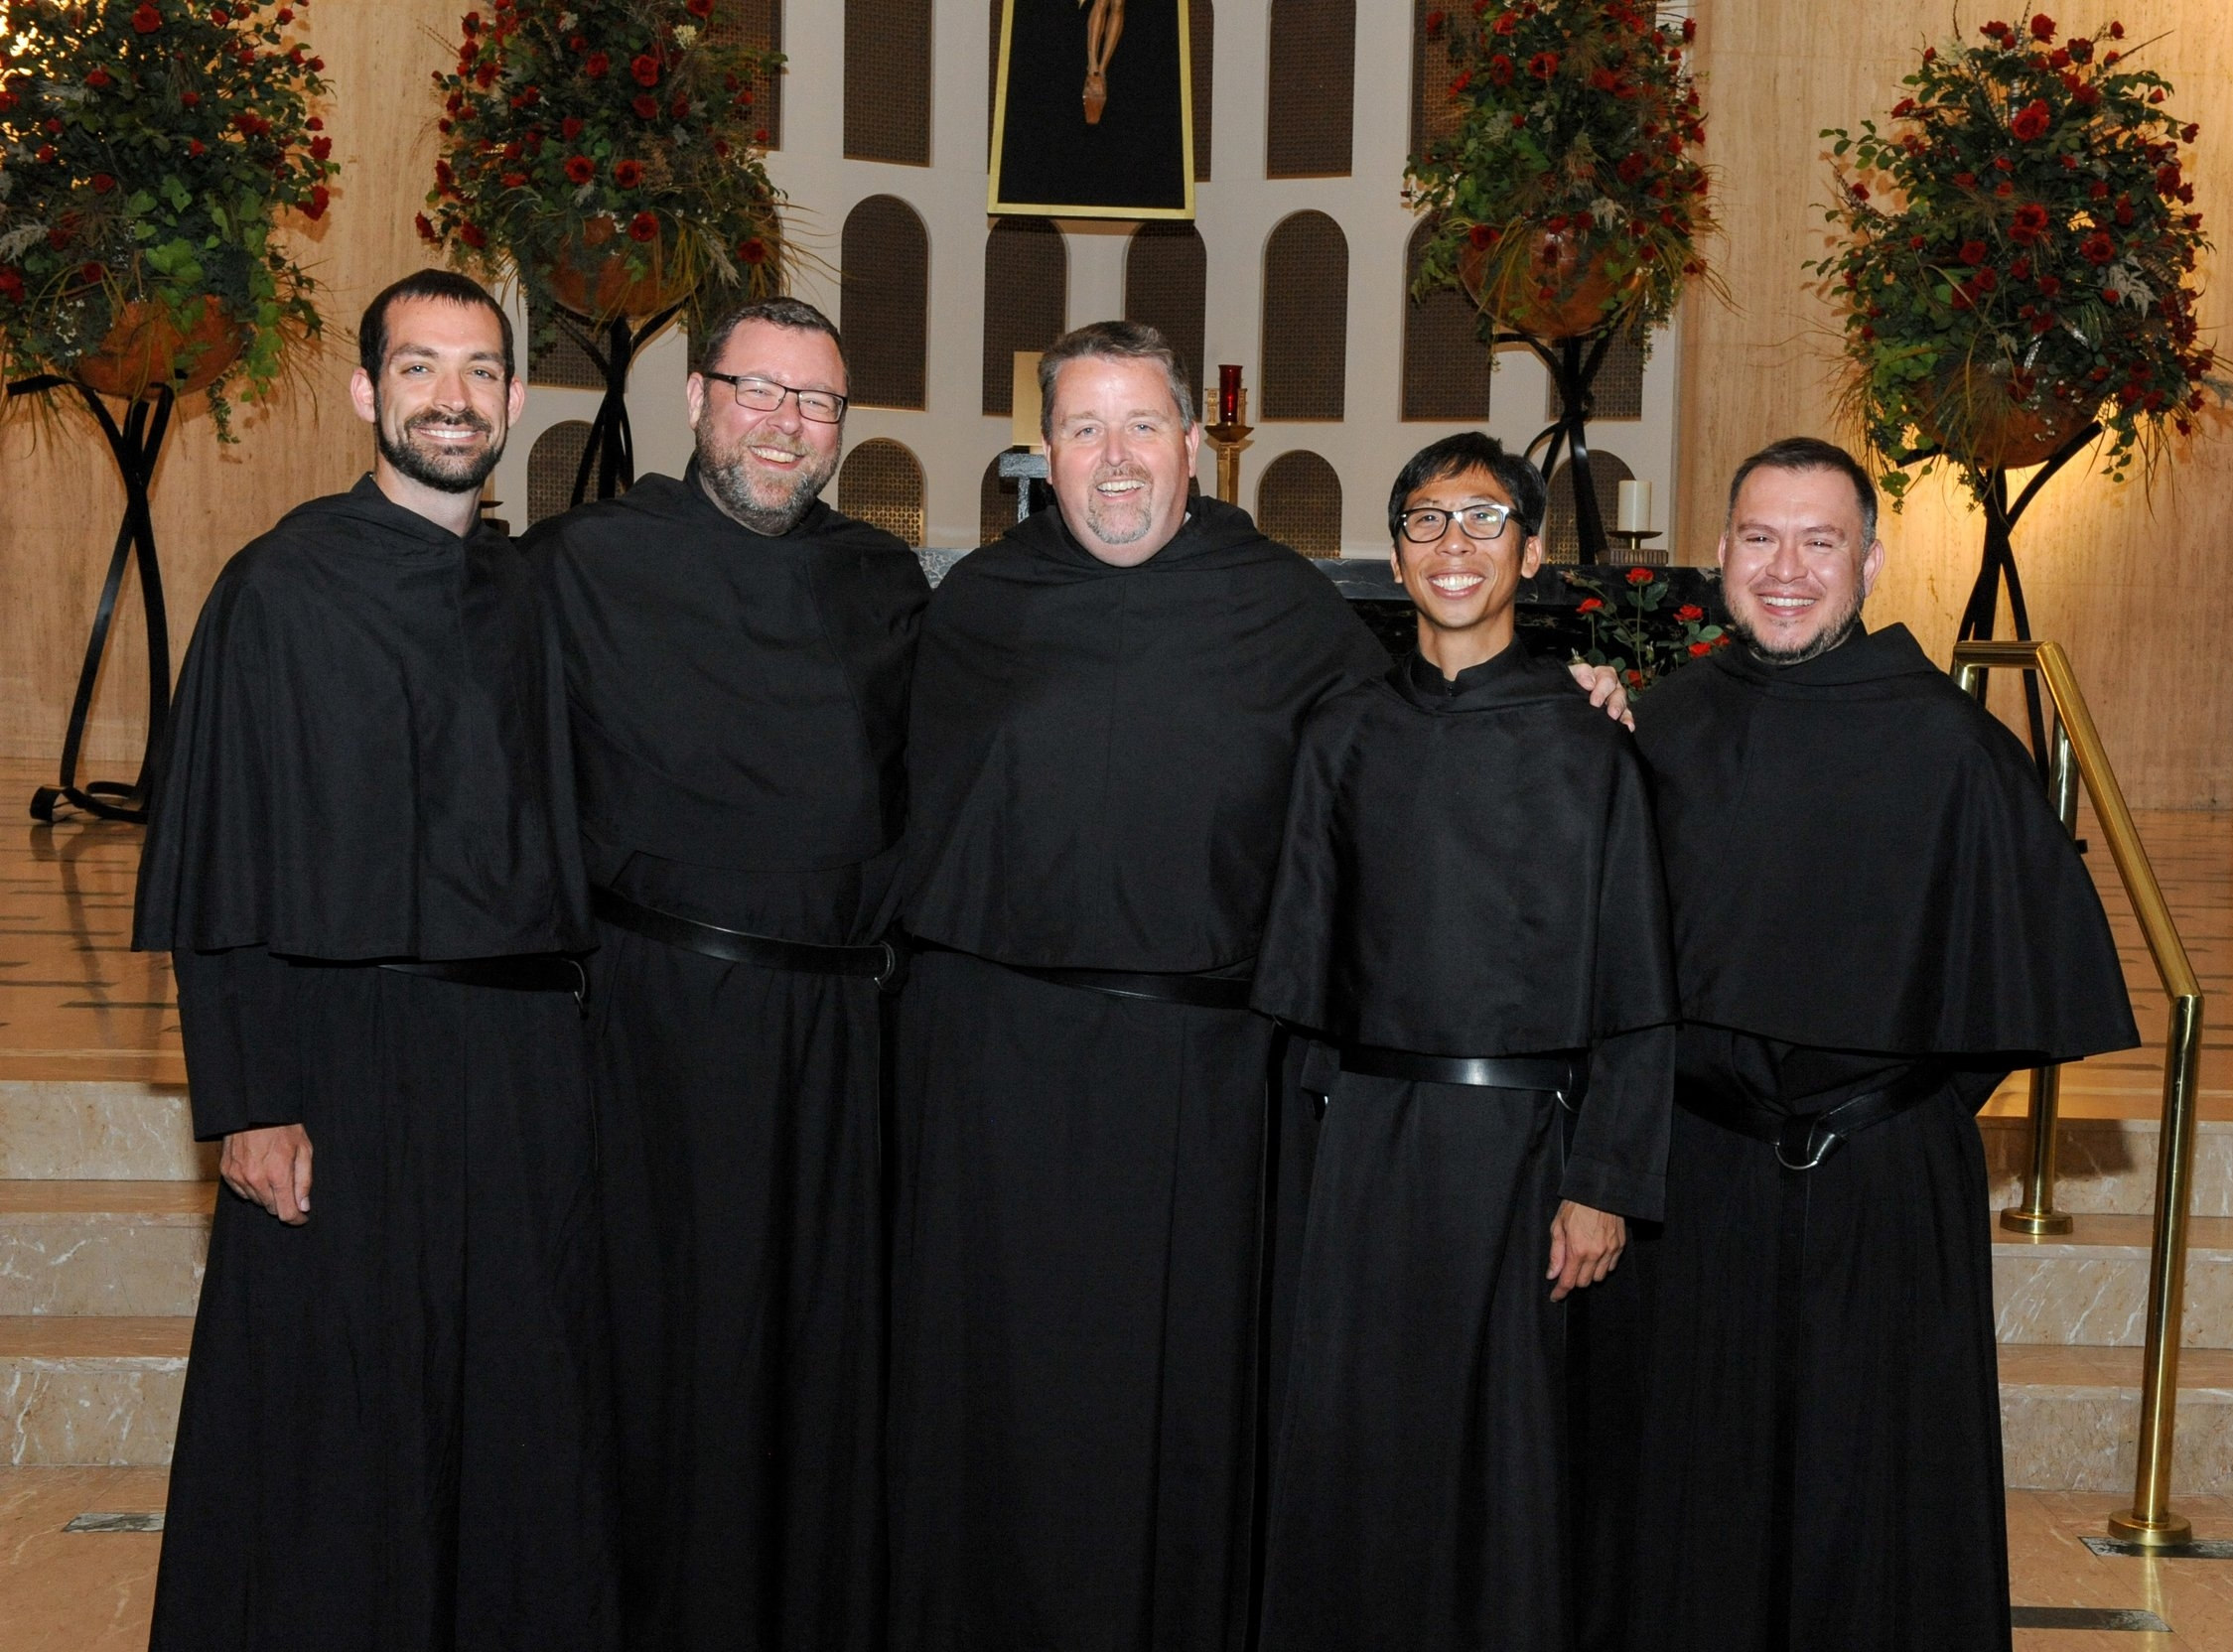 Whether or not if an Augustinian is a priest or a lay brother, all share the same black habit once they profess their first vows